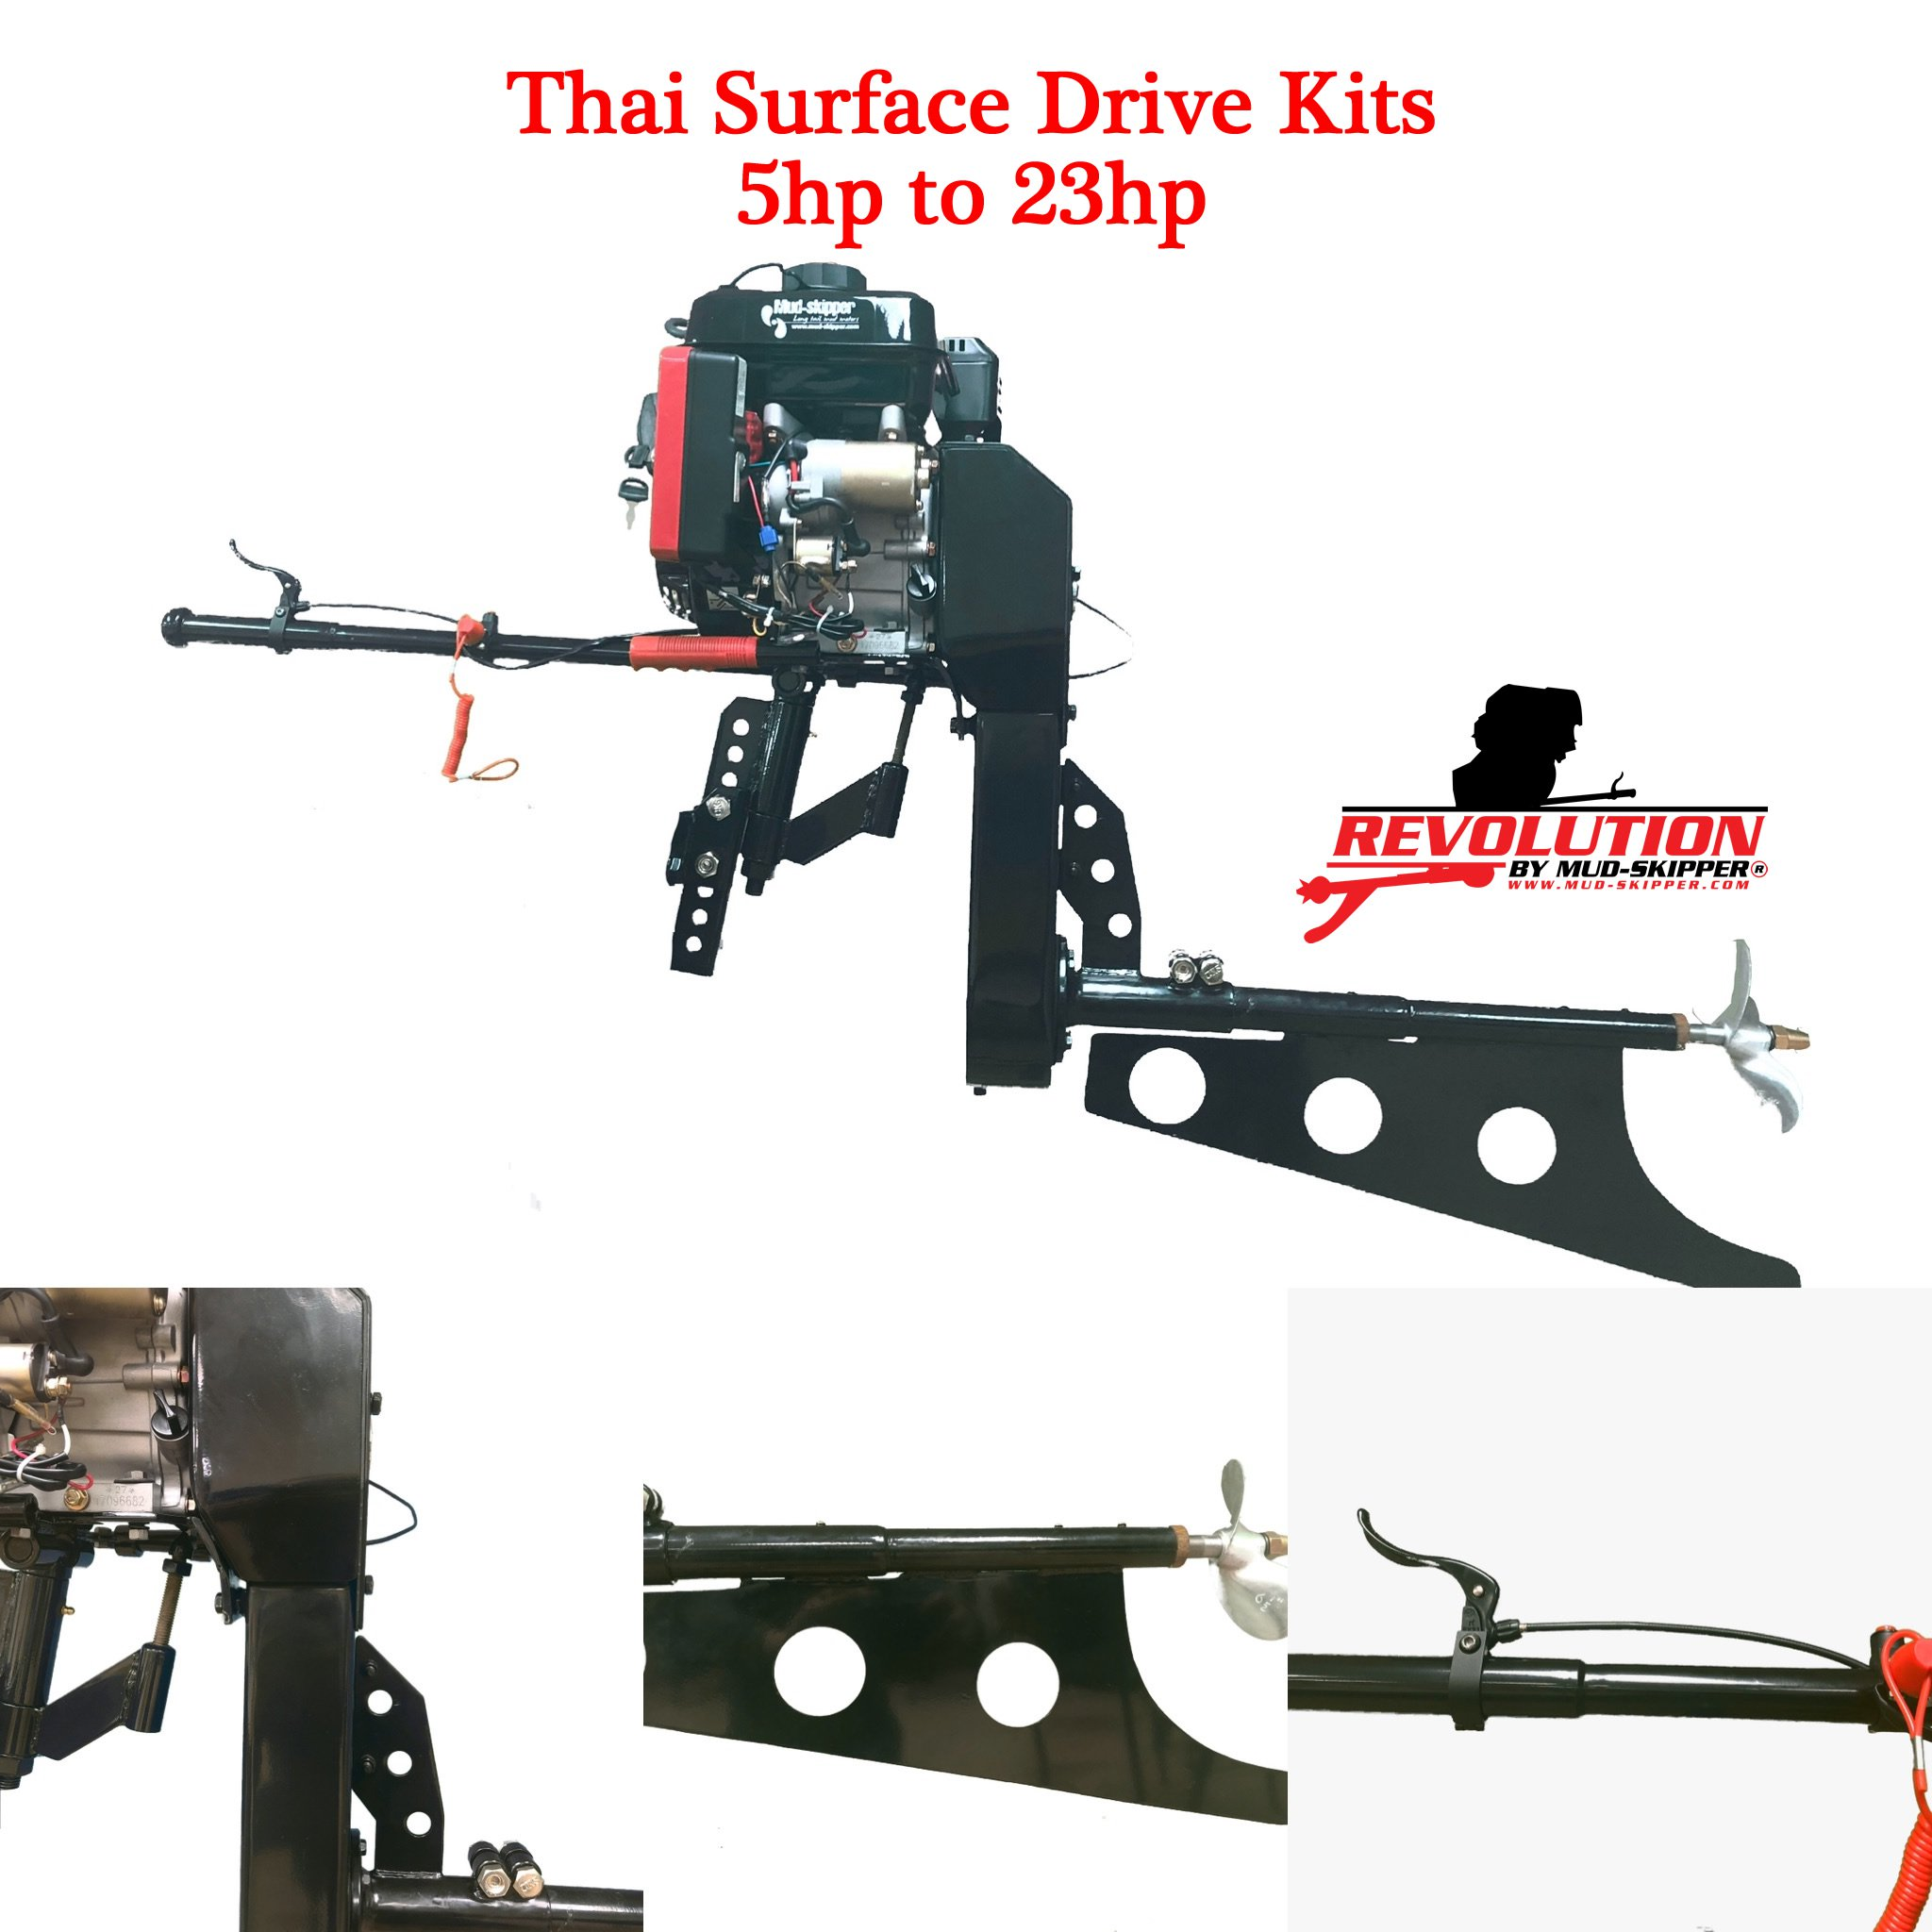 Thai Surface Drives Mud-Skipper Surface Drives